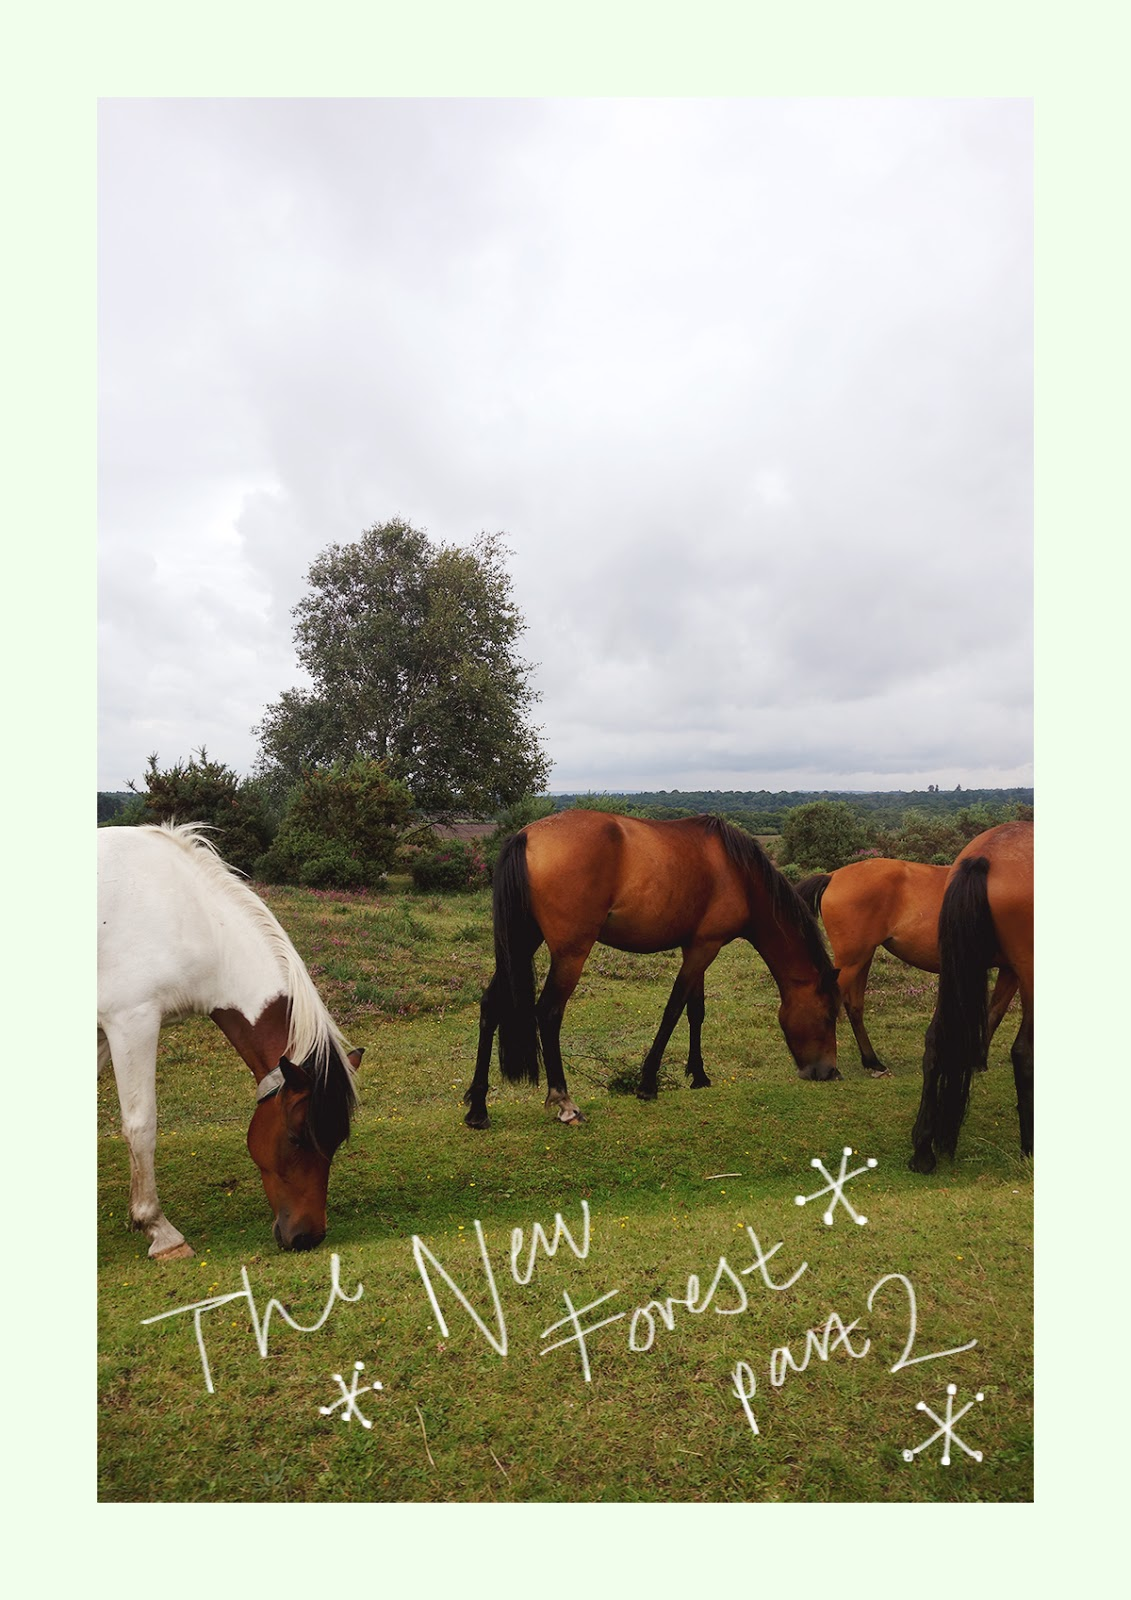 Hello, Hello, Hello! I Have Part Two Of My New Forest Journal For You  Today. If You Are A Fan Of Horses And Greenery Then Blimey Is This The Post  For You!